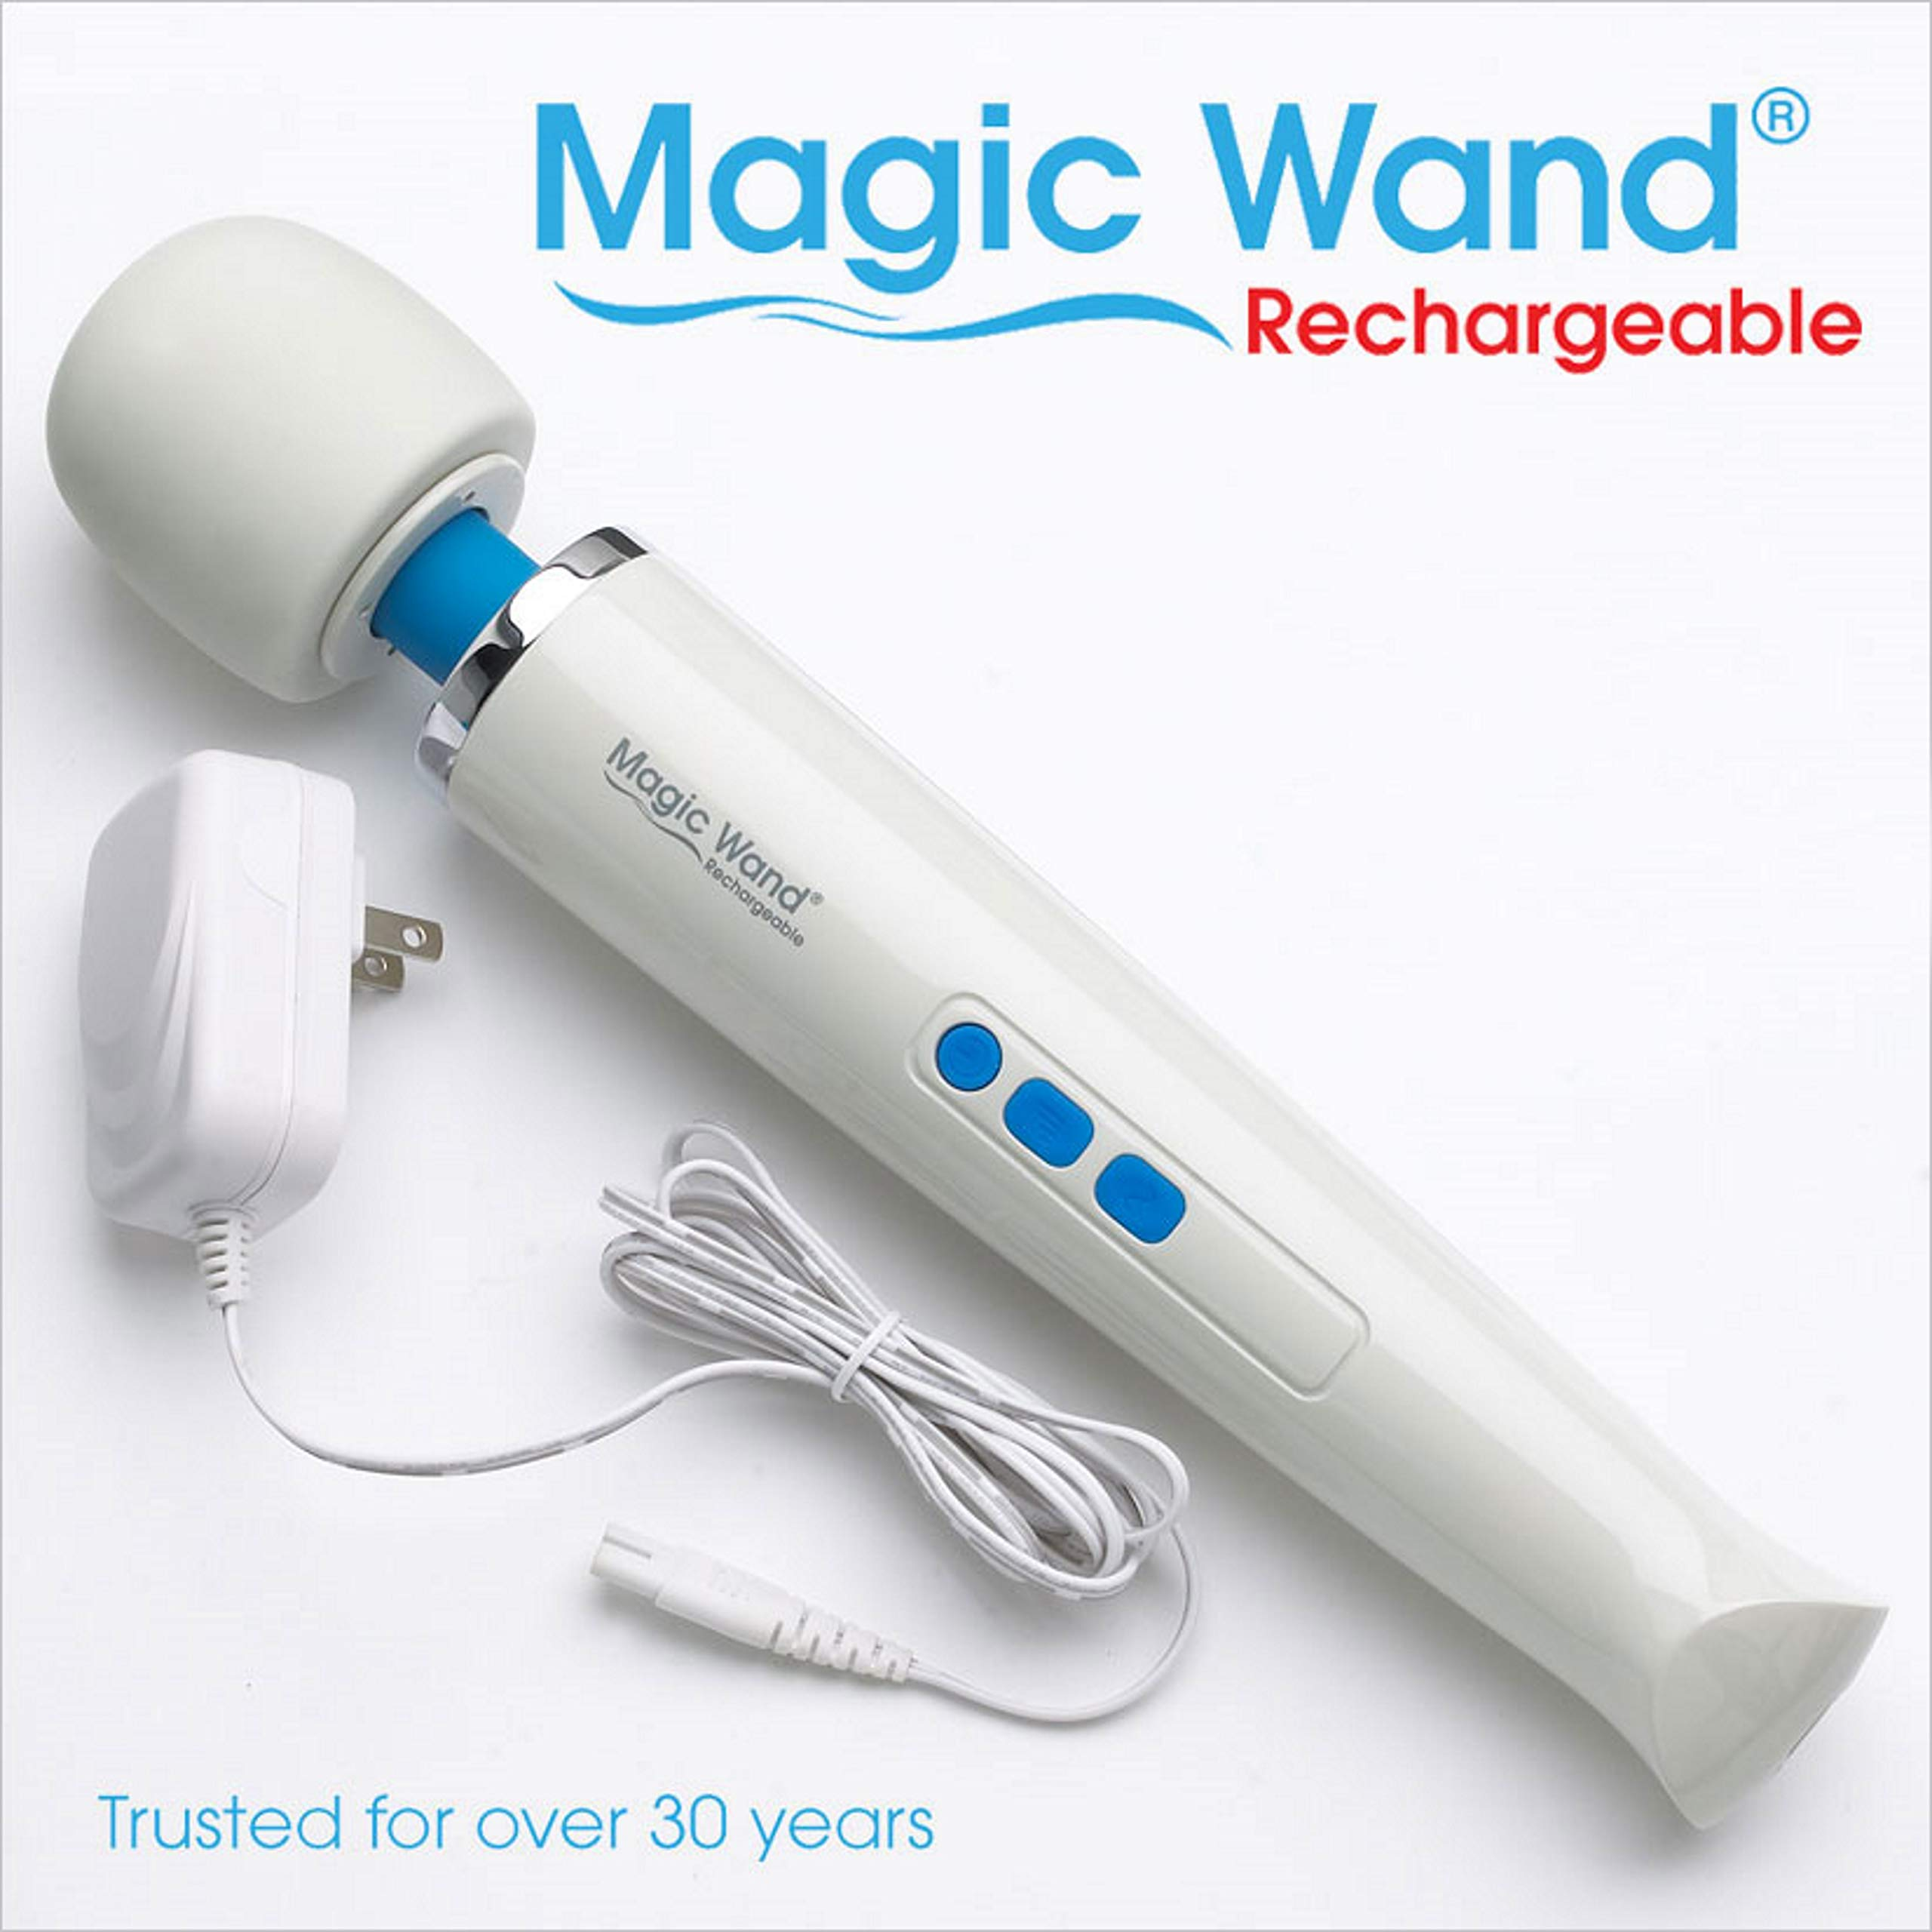 Original Magic Wand Rechargeable Cordless HV-270 by Vibratex with Free IntiMD Active Personal Trigger Pin Point Massager by IntiMD